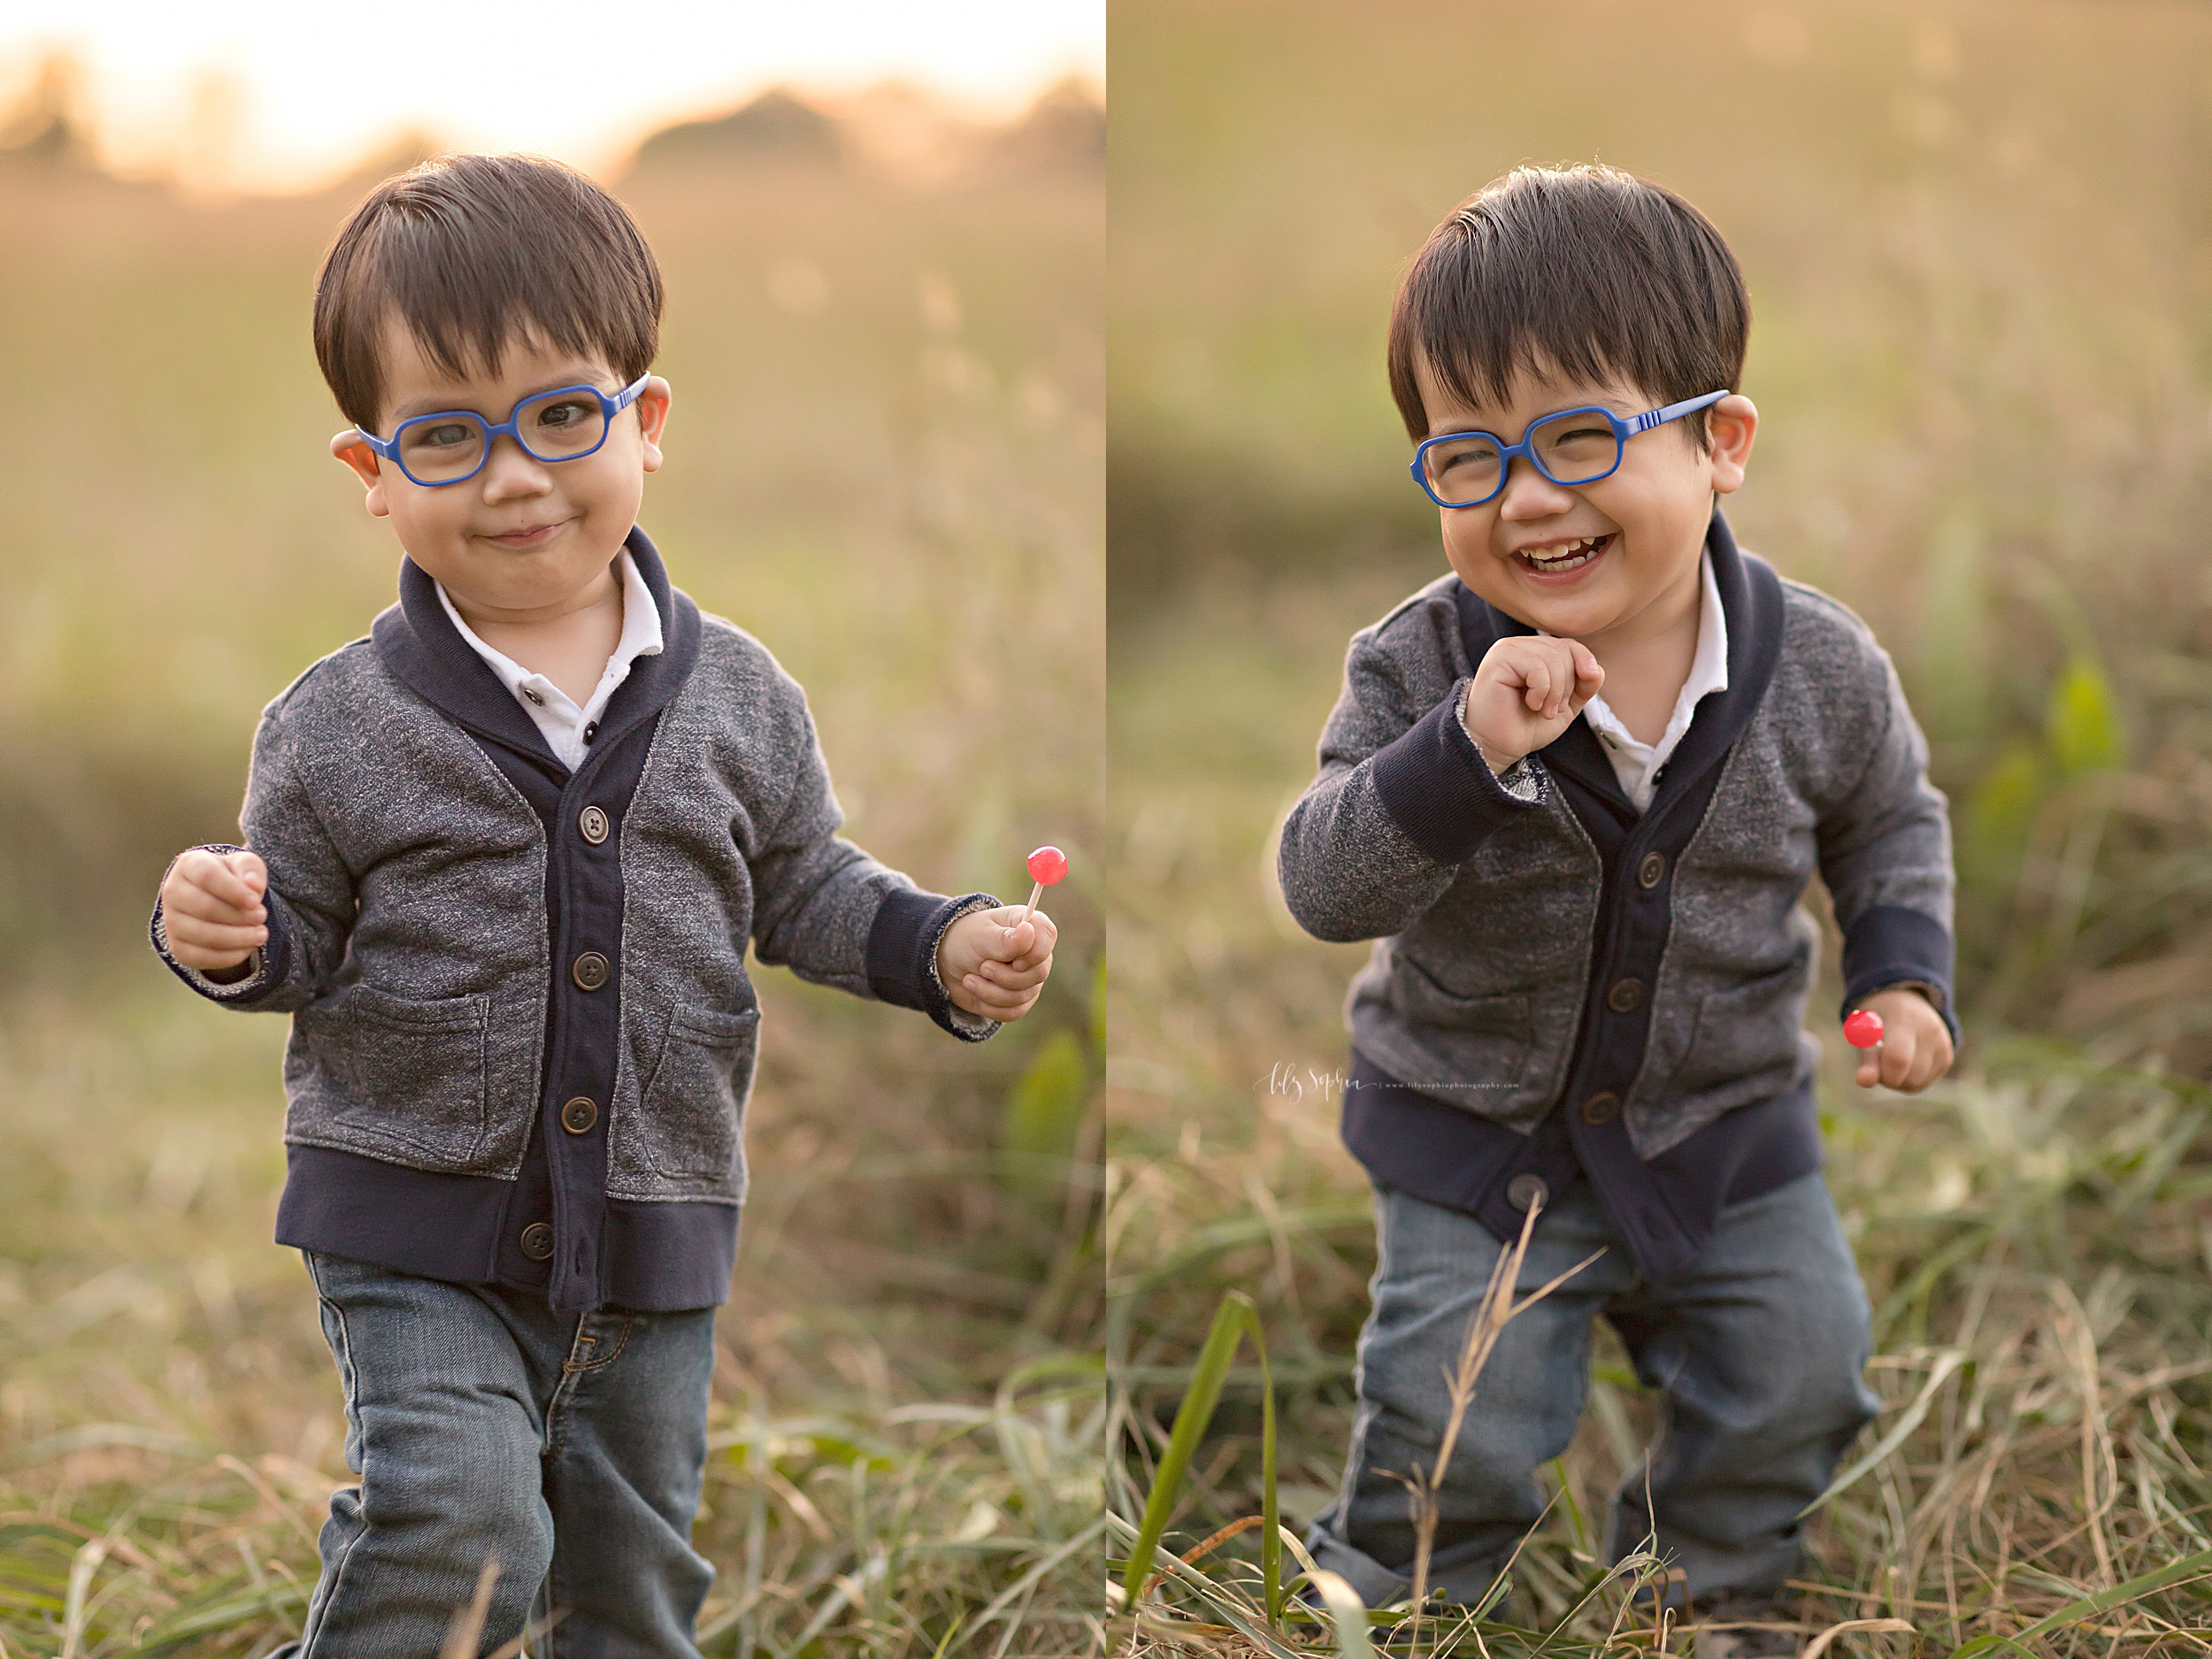 Image of an Asian two year old boy enjoying a lollipop in an Atlanta field at sunset. The little boy with blue glasses is wearing a gray button down sweatshirt with navy blue trim and two pockets on the front over a white polo shirt and blue jeans. He is holding a pink lollipop in his hands. He is smiling in one of the pictures and giggling in the other, so you can see his toothy smile.